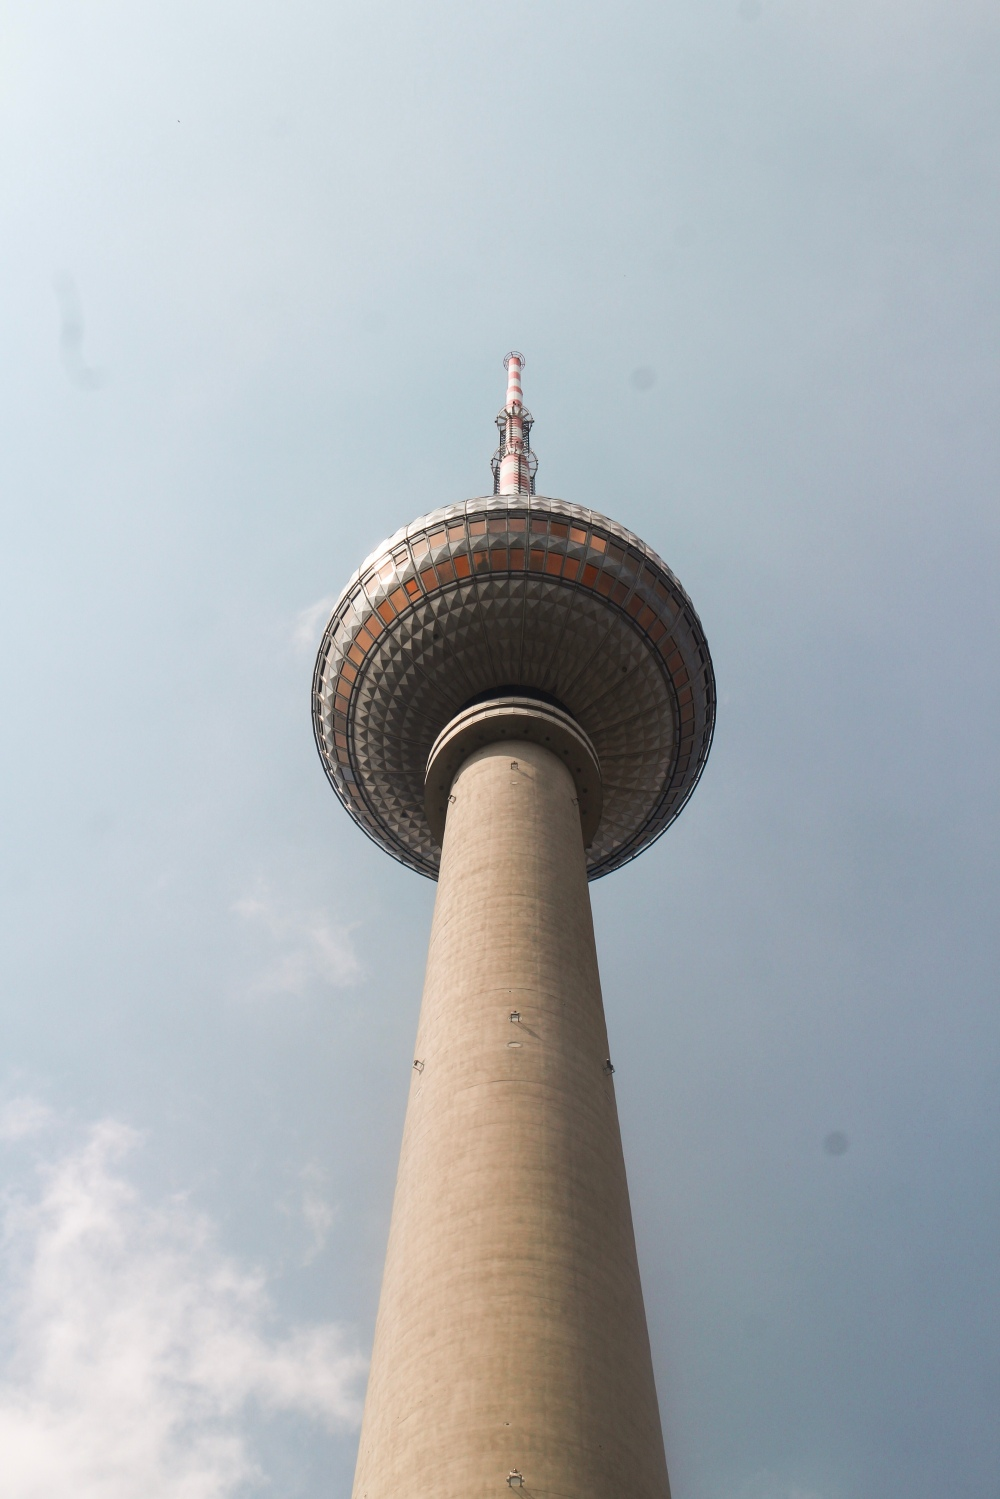 A view of the Berlin TV Tower